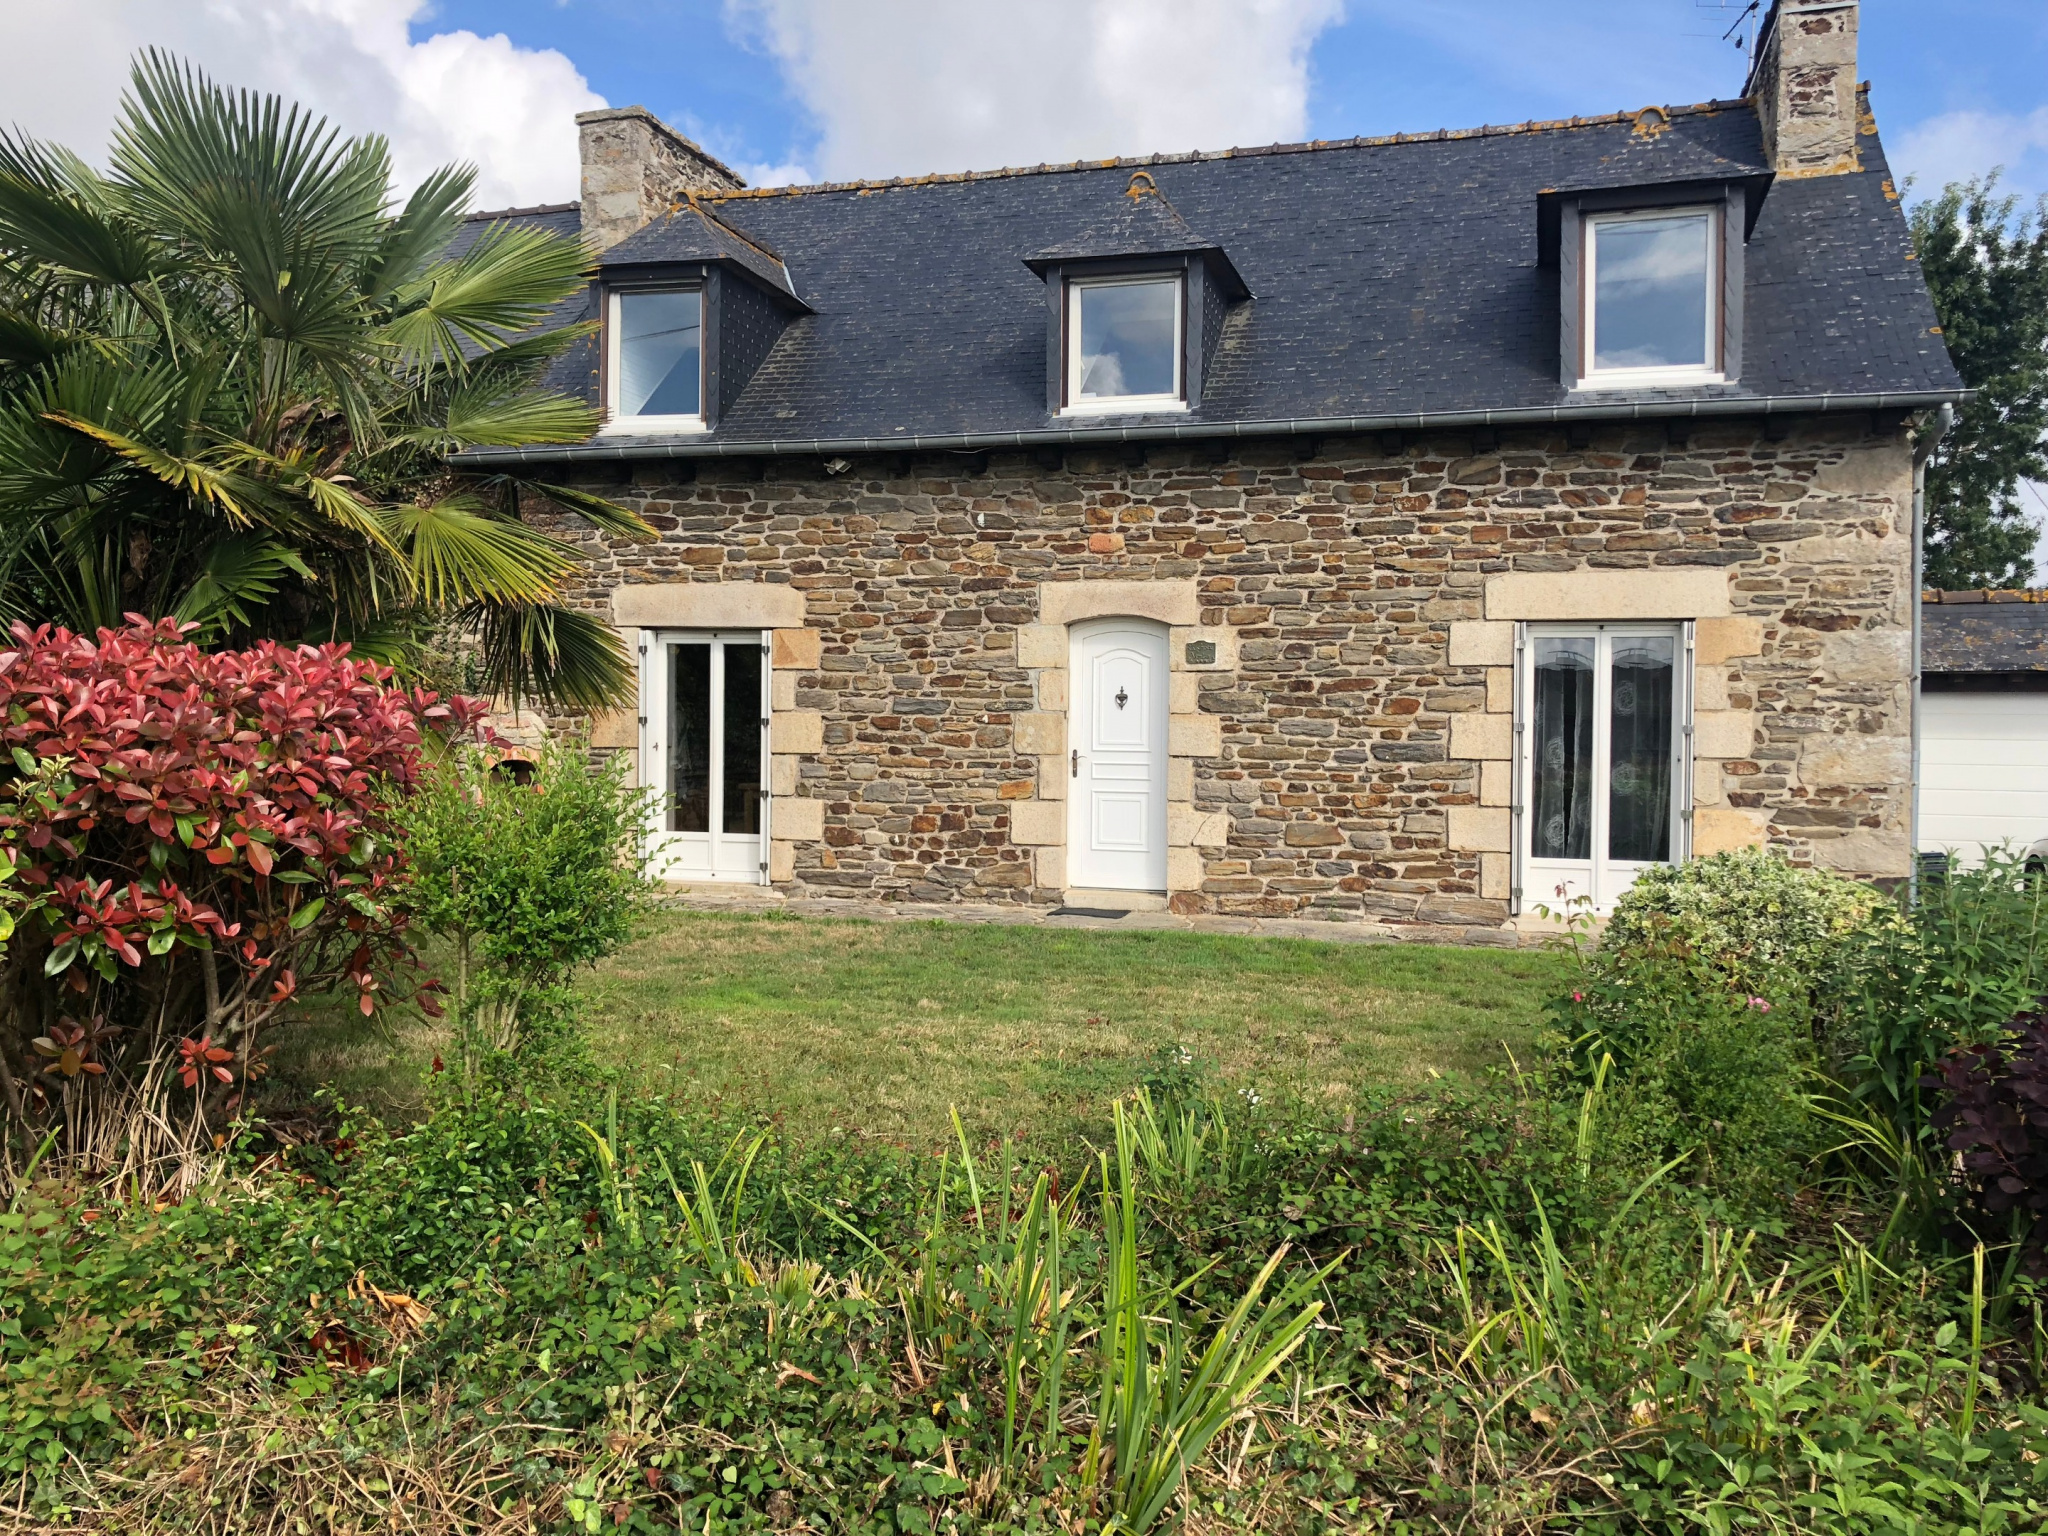 ABOUT 4KM FROM MATIGNON AND 10MN FROM THE BEACH